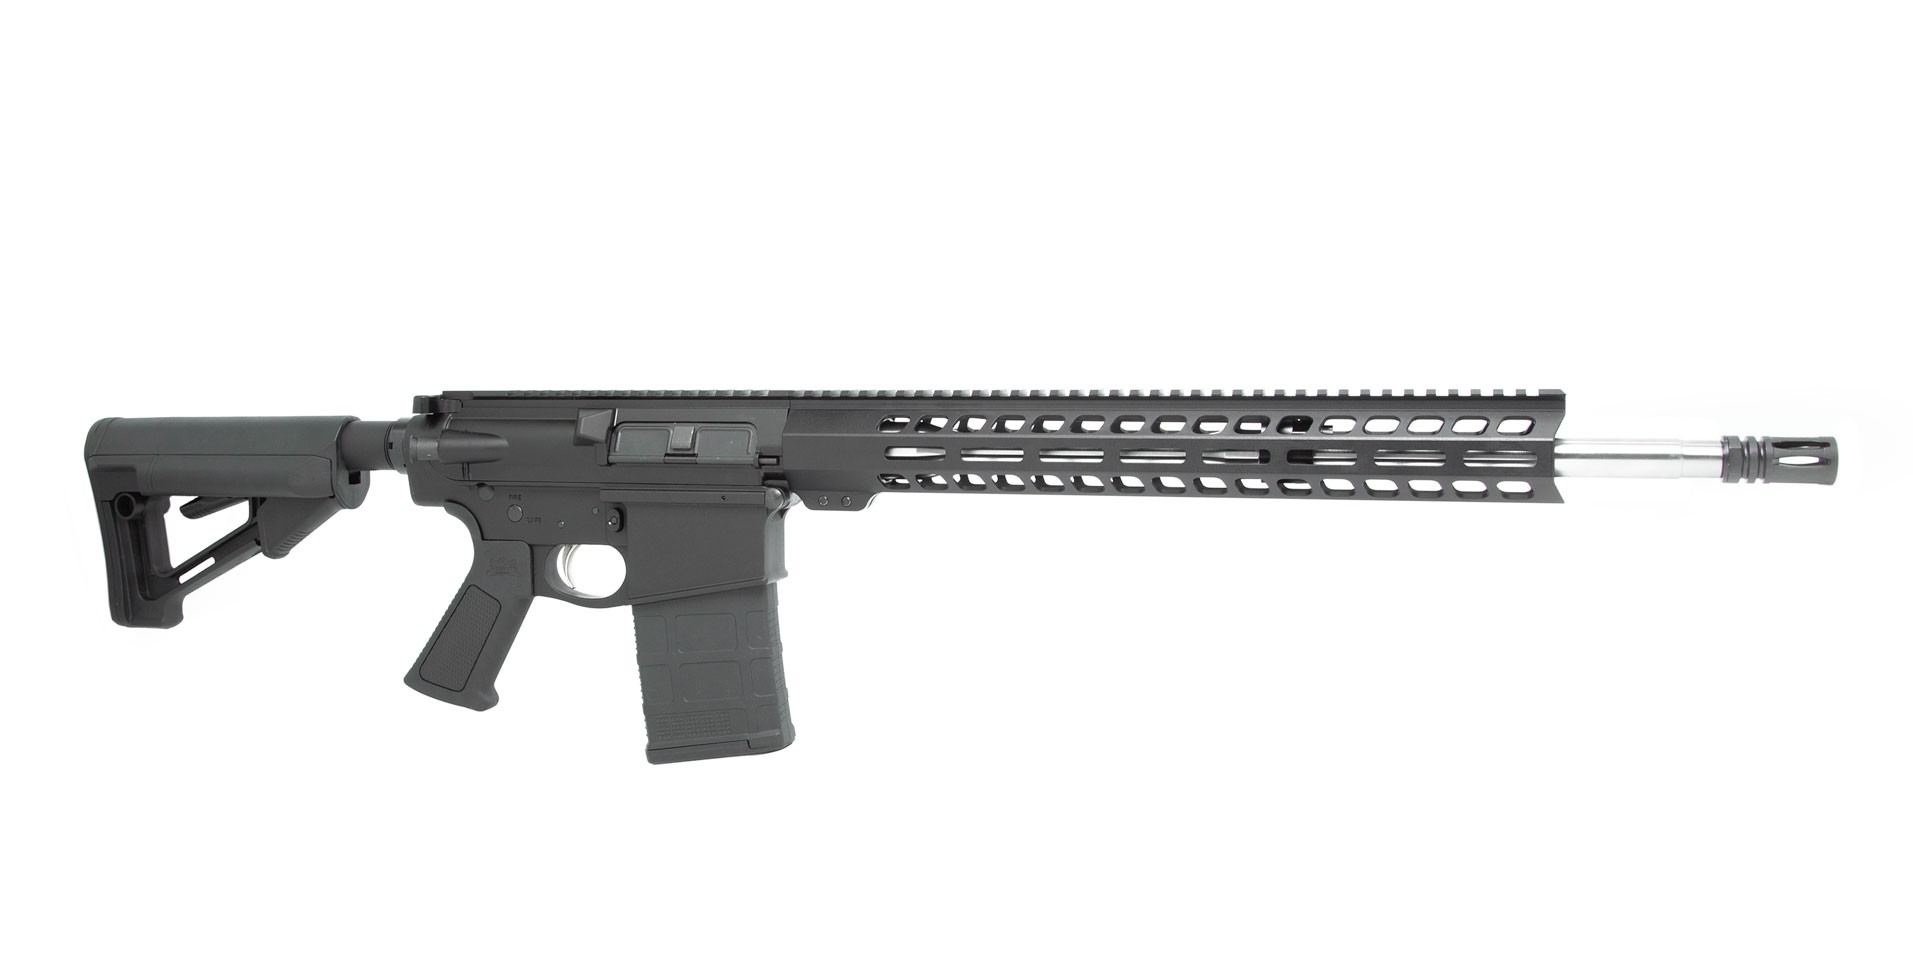 "PSA Gen 3 PA10 .308 18"" Mid-Length Rifle"